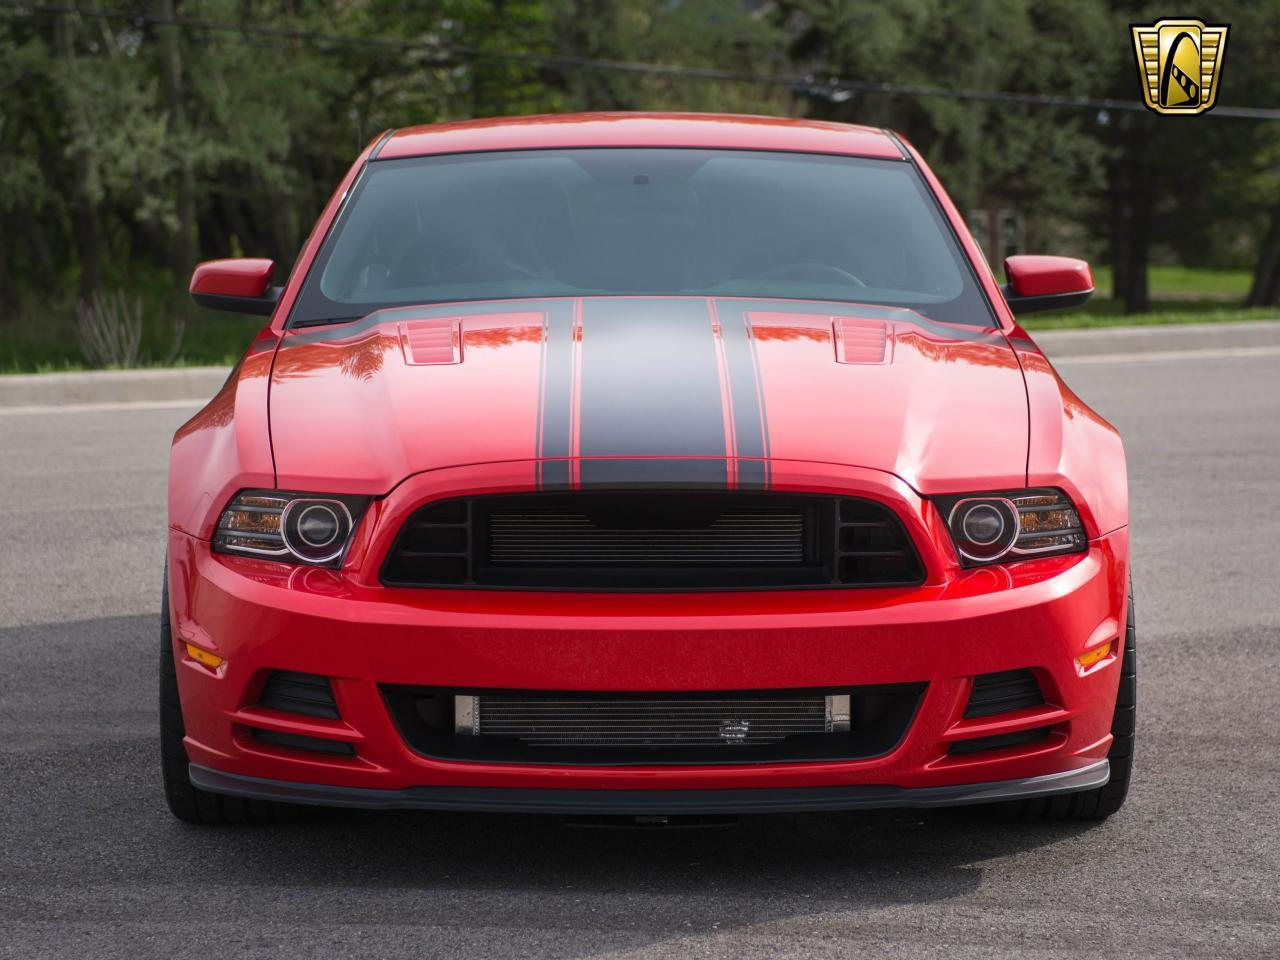 Large Picture of 2013 Ford Mustang located in Kenosha Wisconsin - $49,995.00 - L1AH